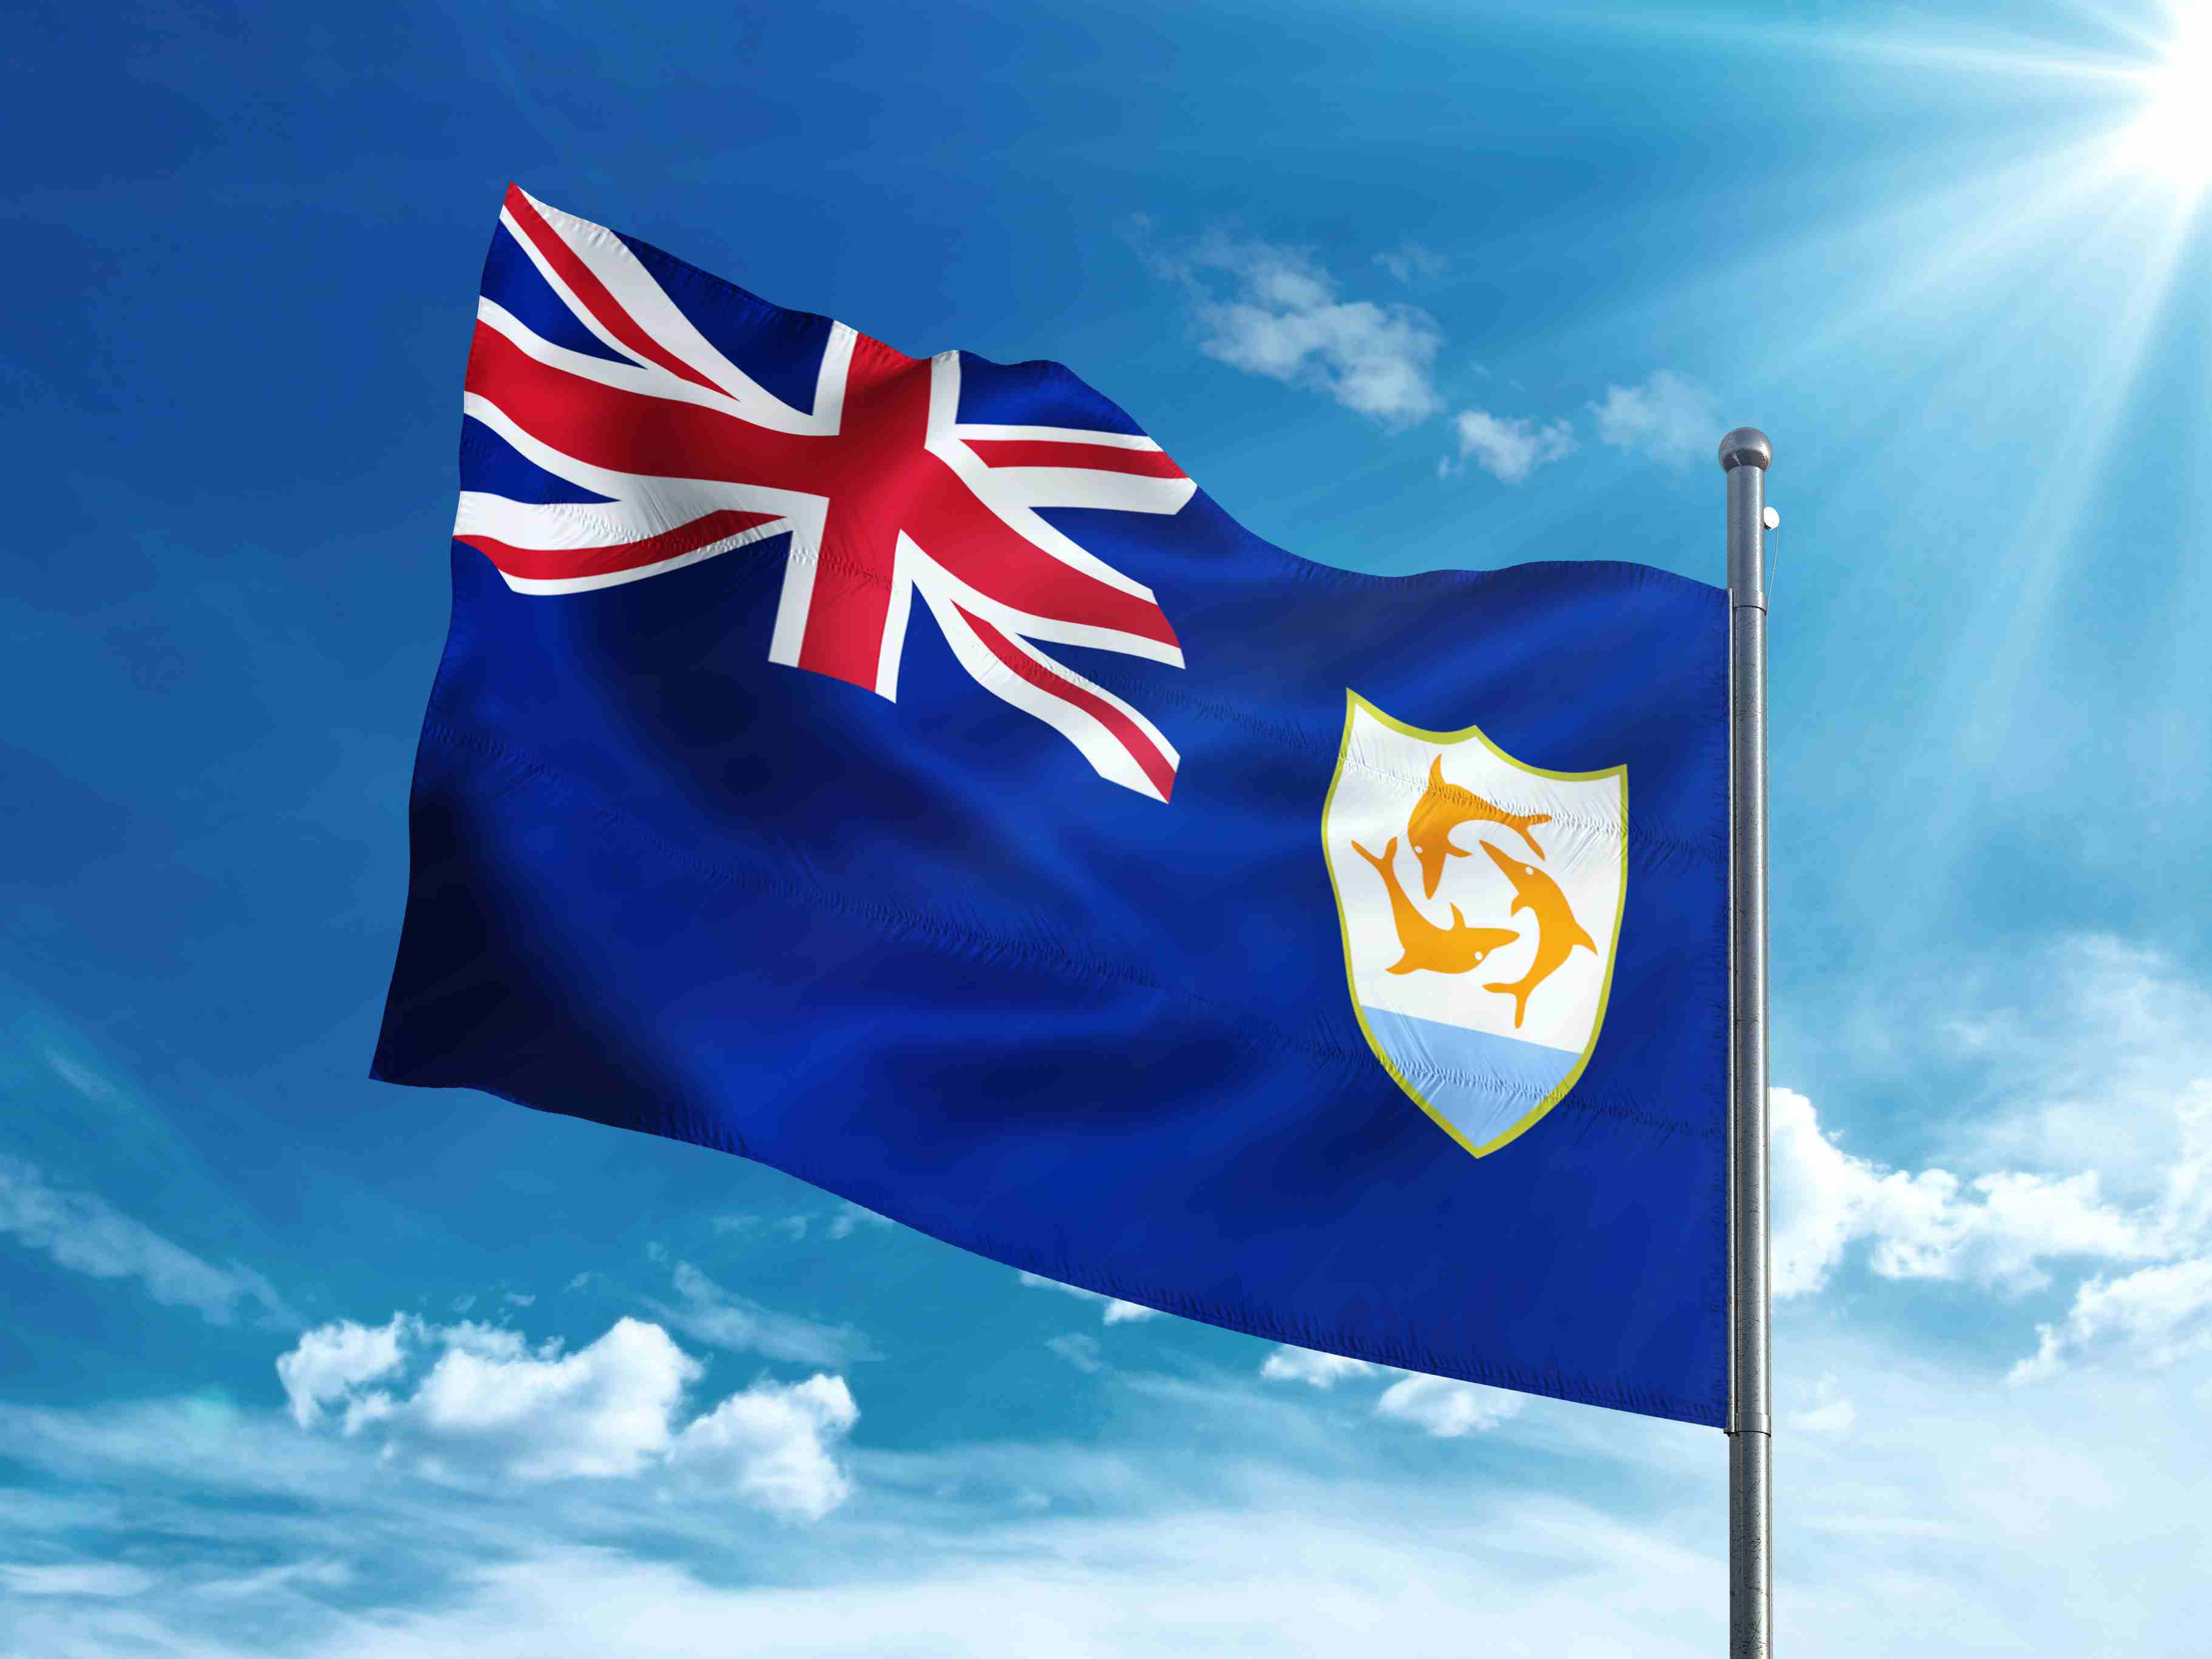 Anguilla flag waving in the blue sky